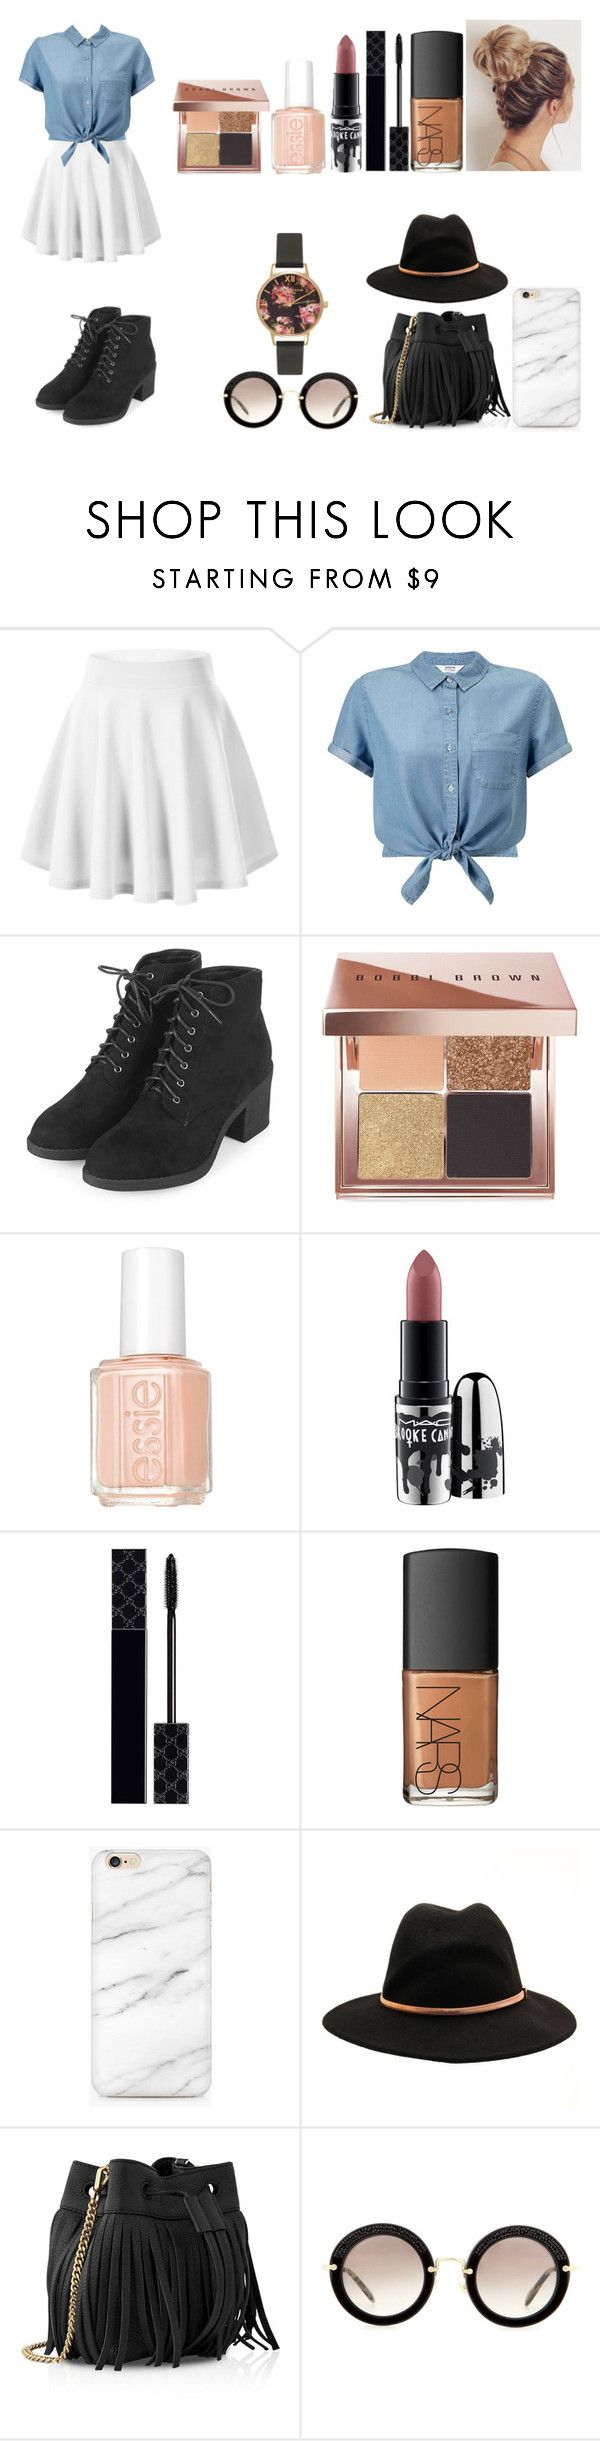 """""""Untitled #484"""" by kalieh092 on Polyvore featuring Miss Selfridge, Topshop, Bobbi Brown Cosmetics, Essie, MAC Cosmetics, Gucci, NARS Cosmetics, Ted Baker, Whistles and Miu Miu"""